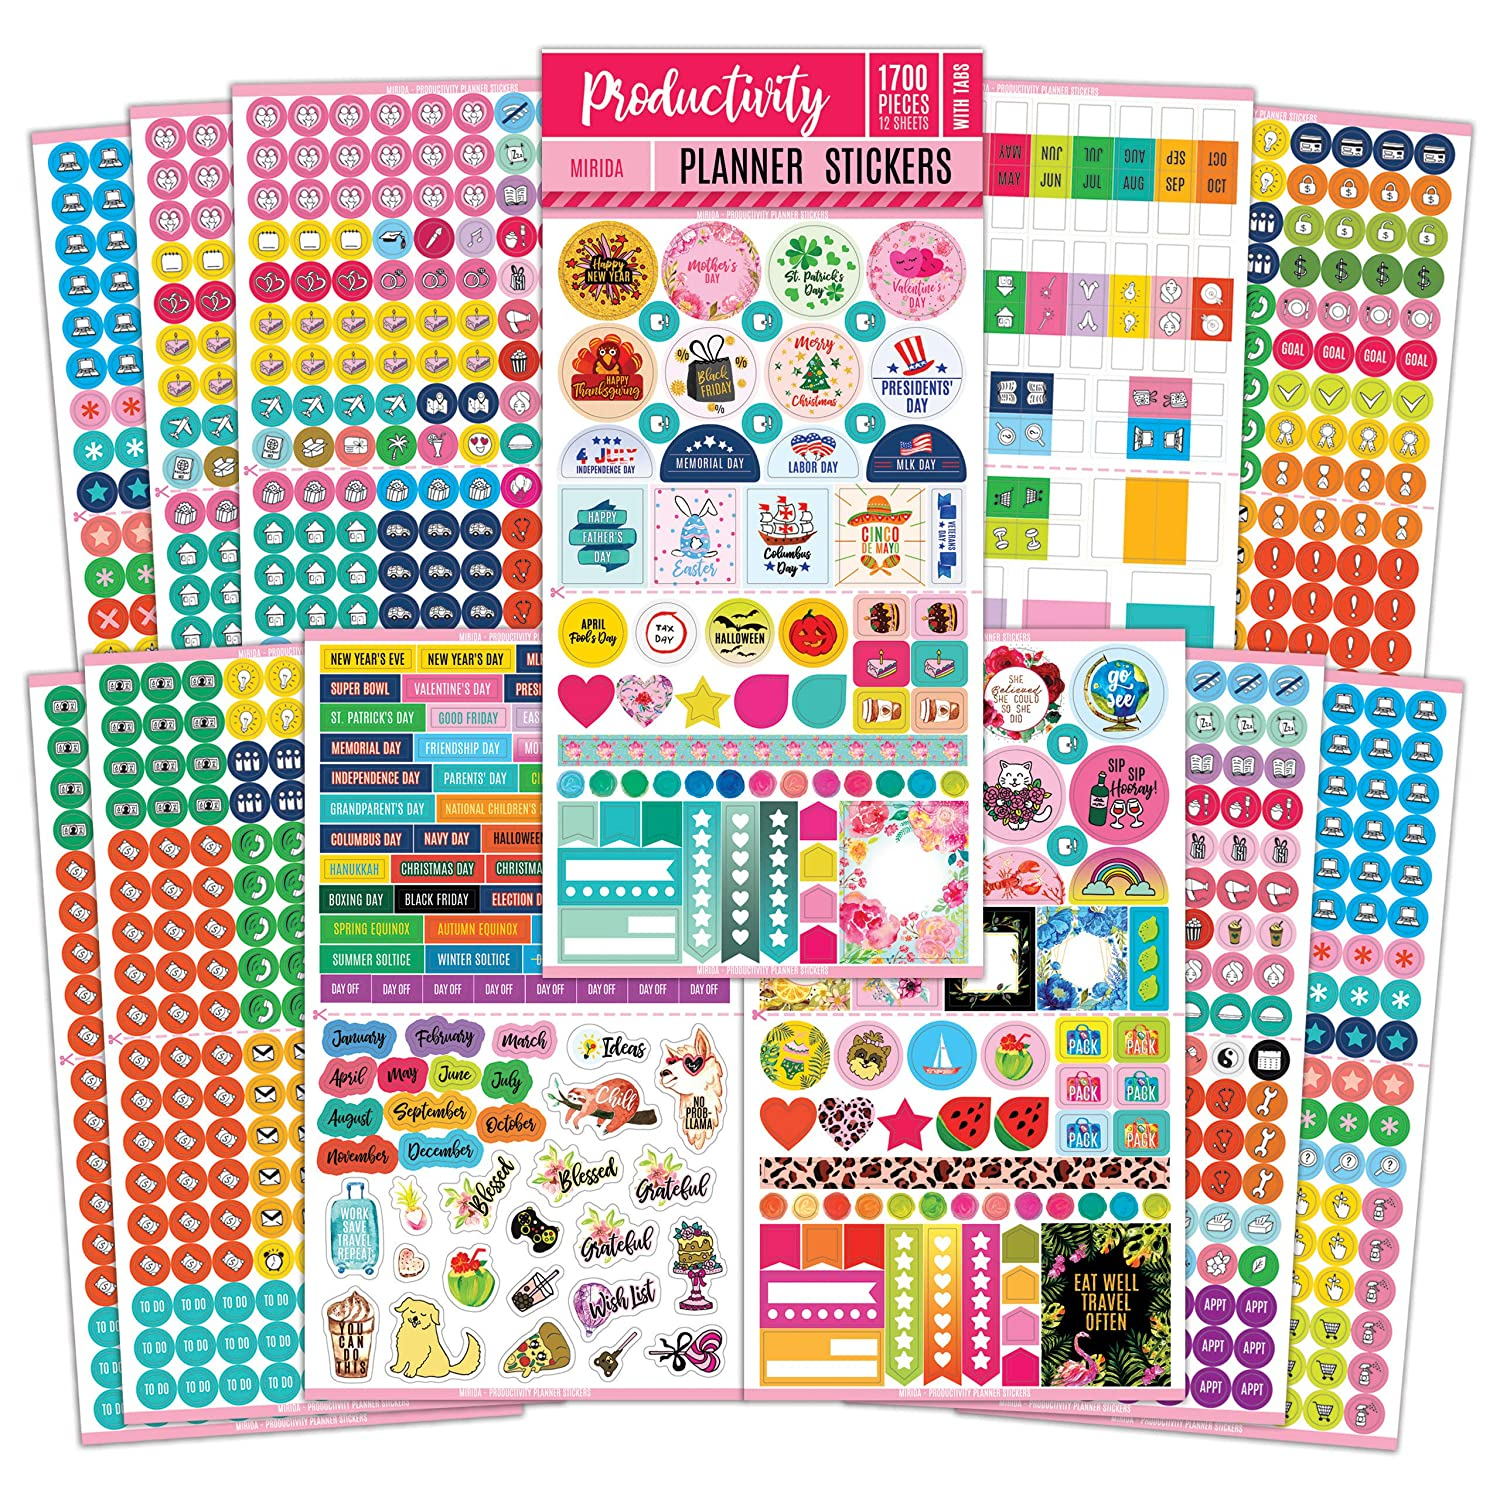 Mirida Planner Stickers for Journaling, Agenda, and Calendar, for Adults. Productivity Set of 12 Sheets - 1700 Mini Icons, Work, Holiday, and Monthly ...